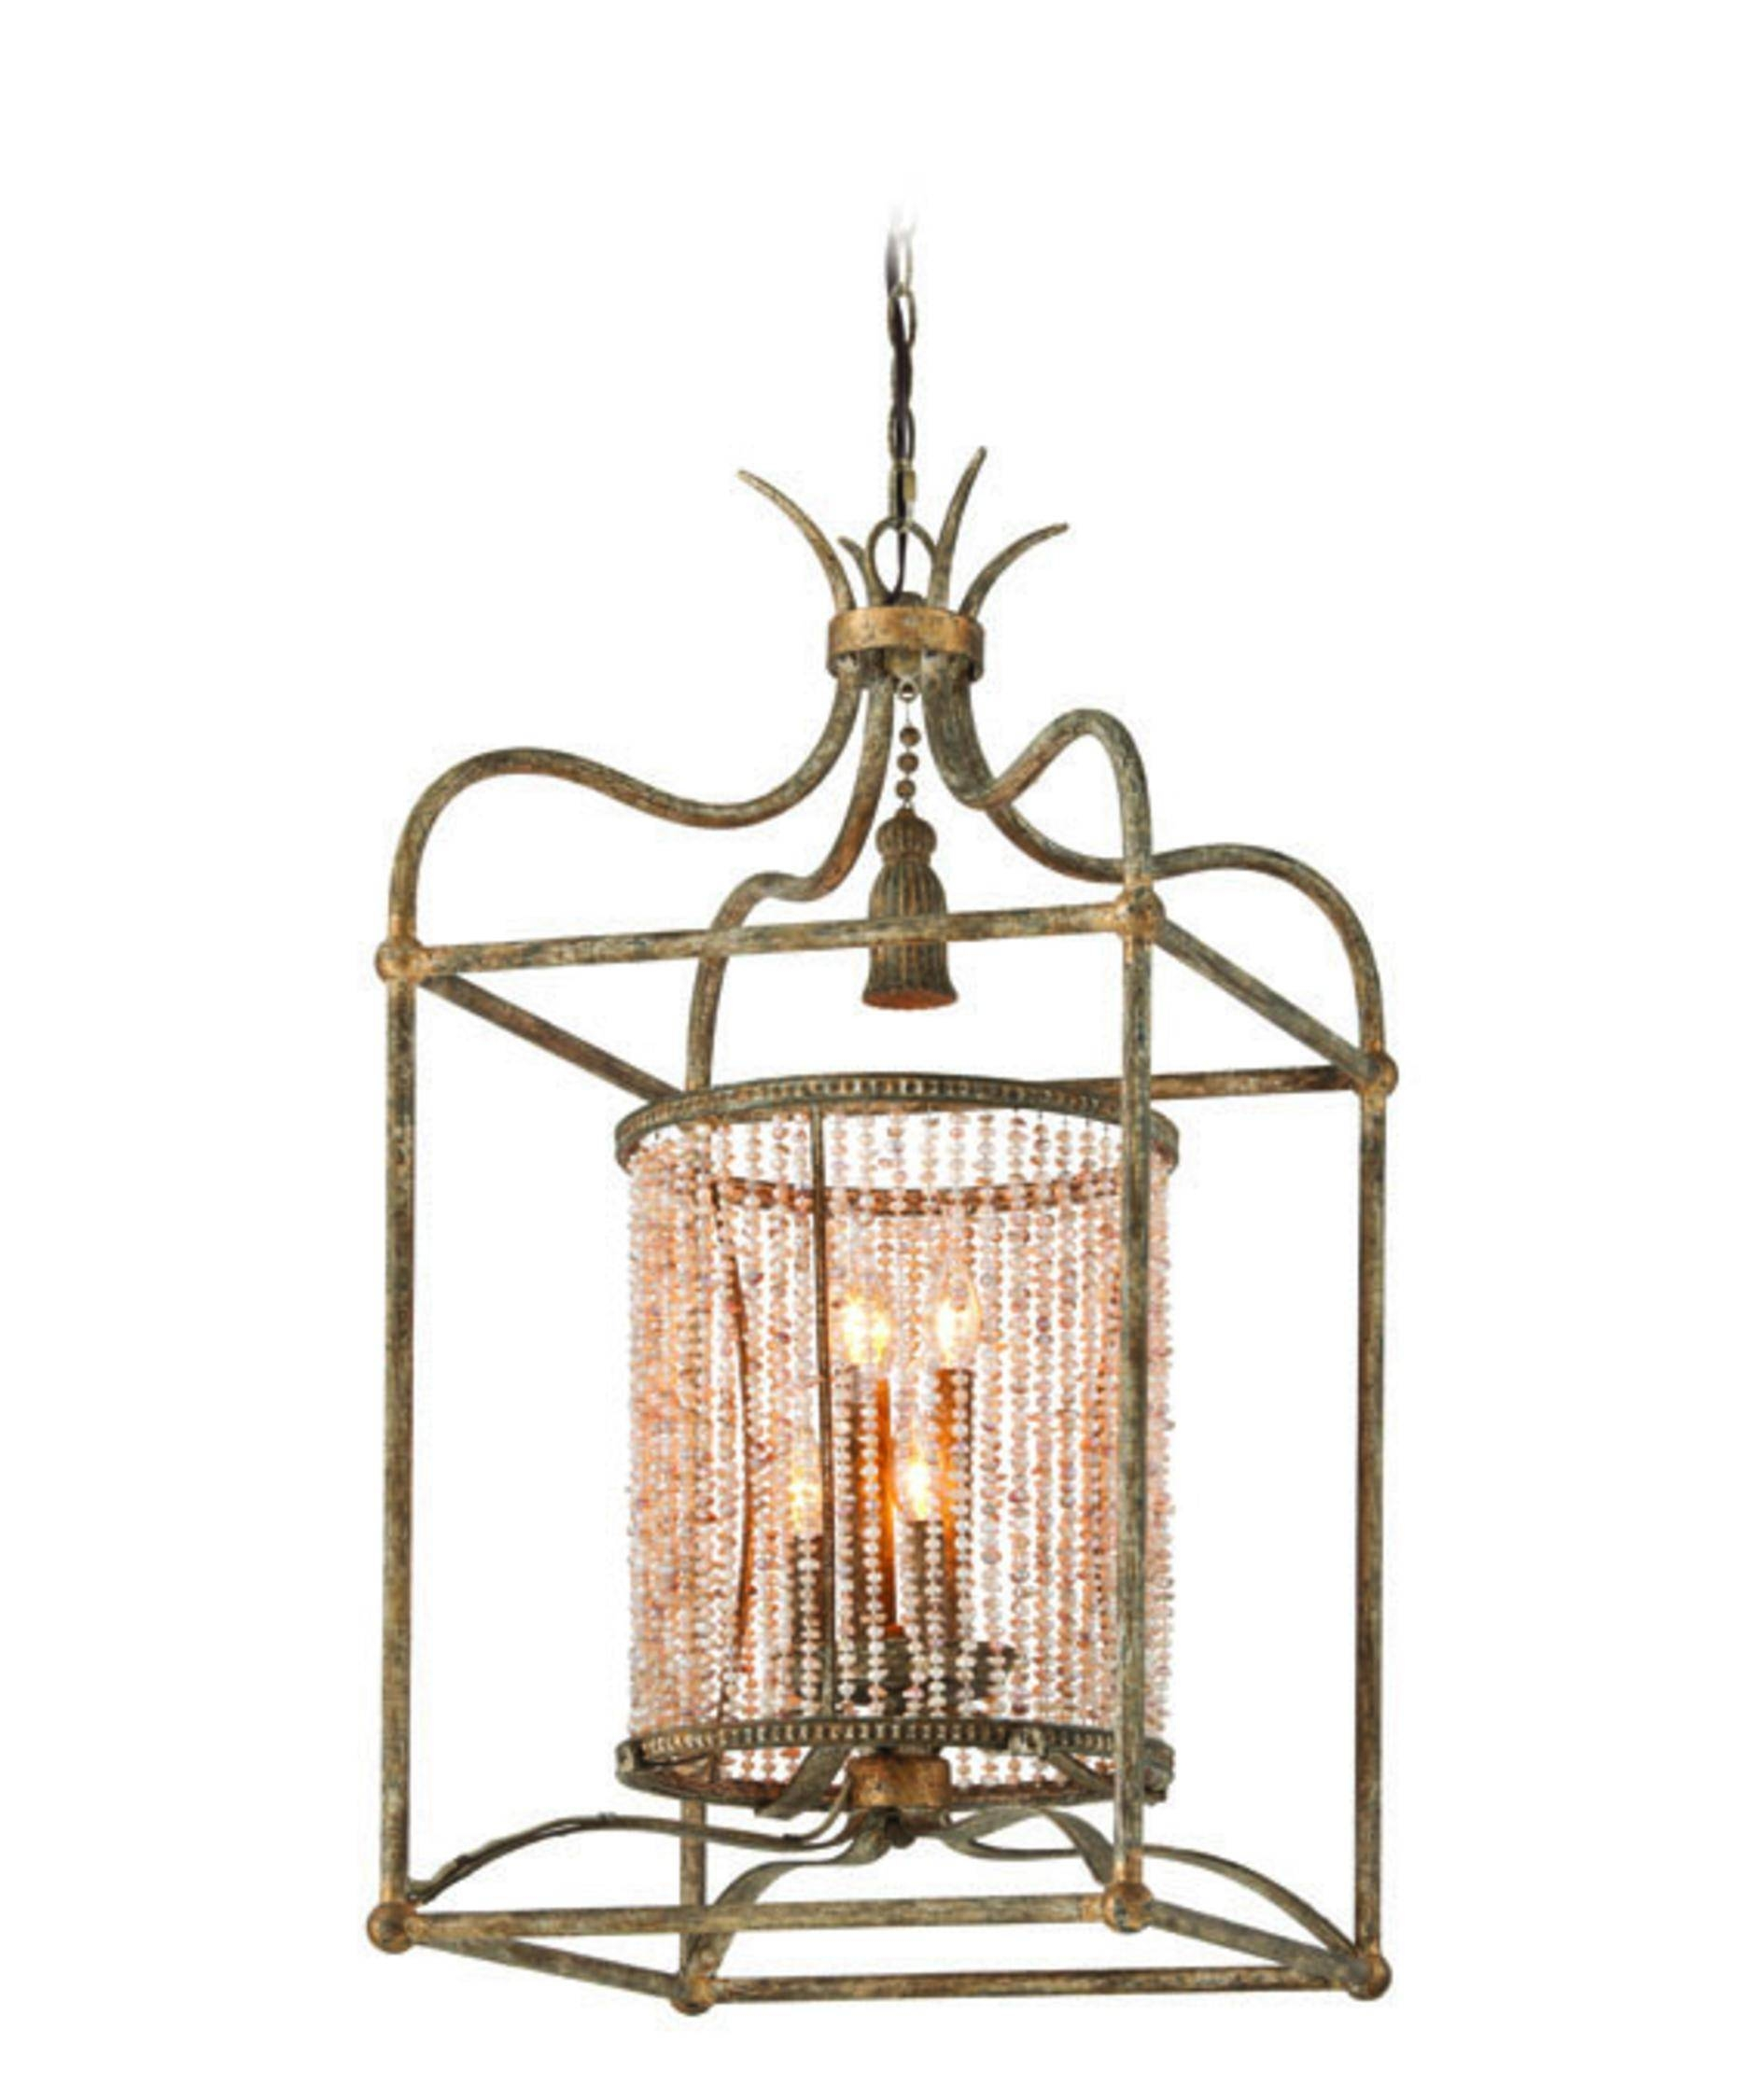 Troy Lighting Sausalito Look Alike | Advice For Your Home Decoration With Troy Sausalito Pendants (View 12 of 15)